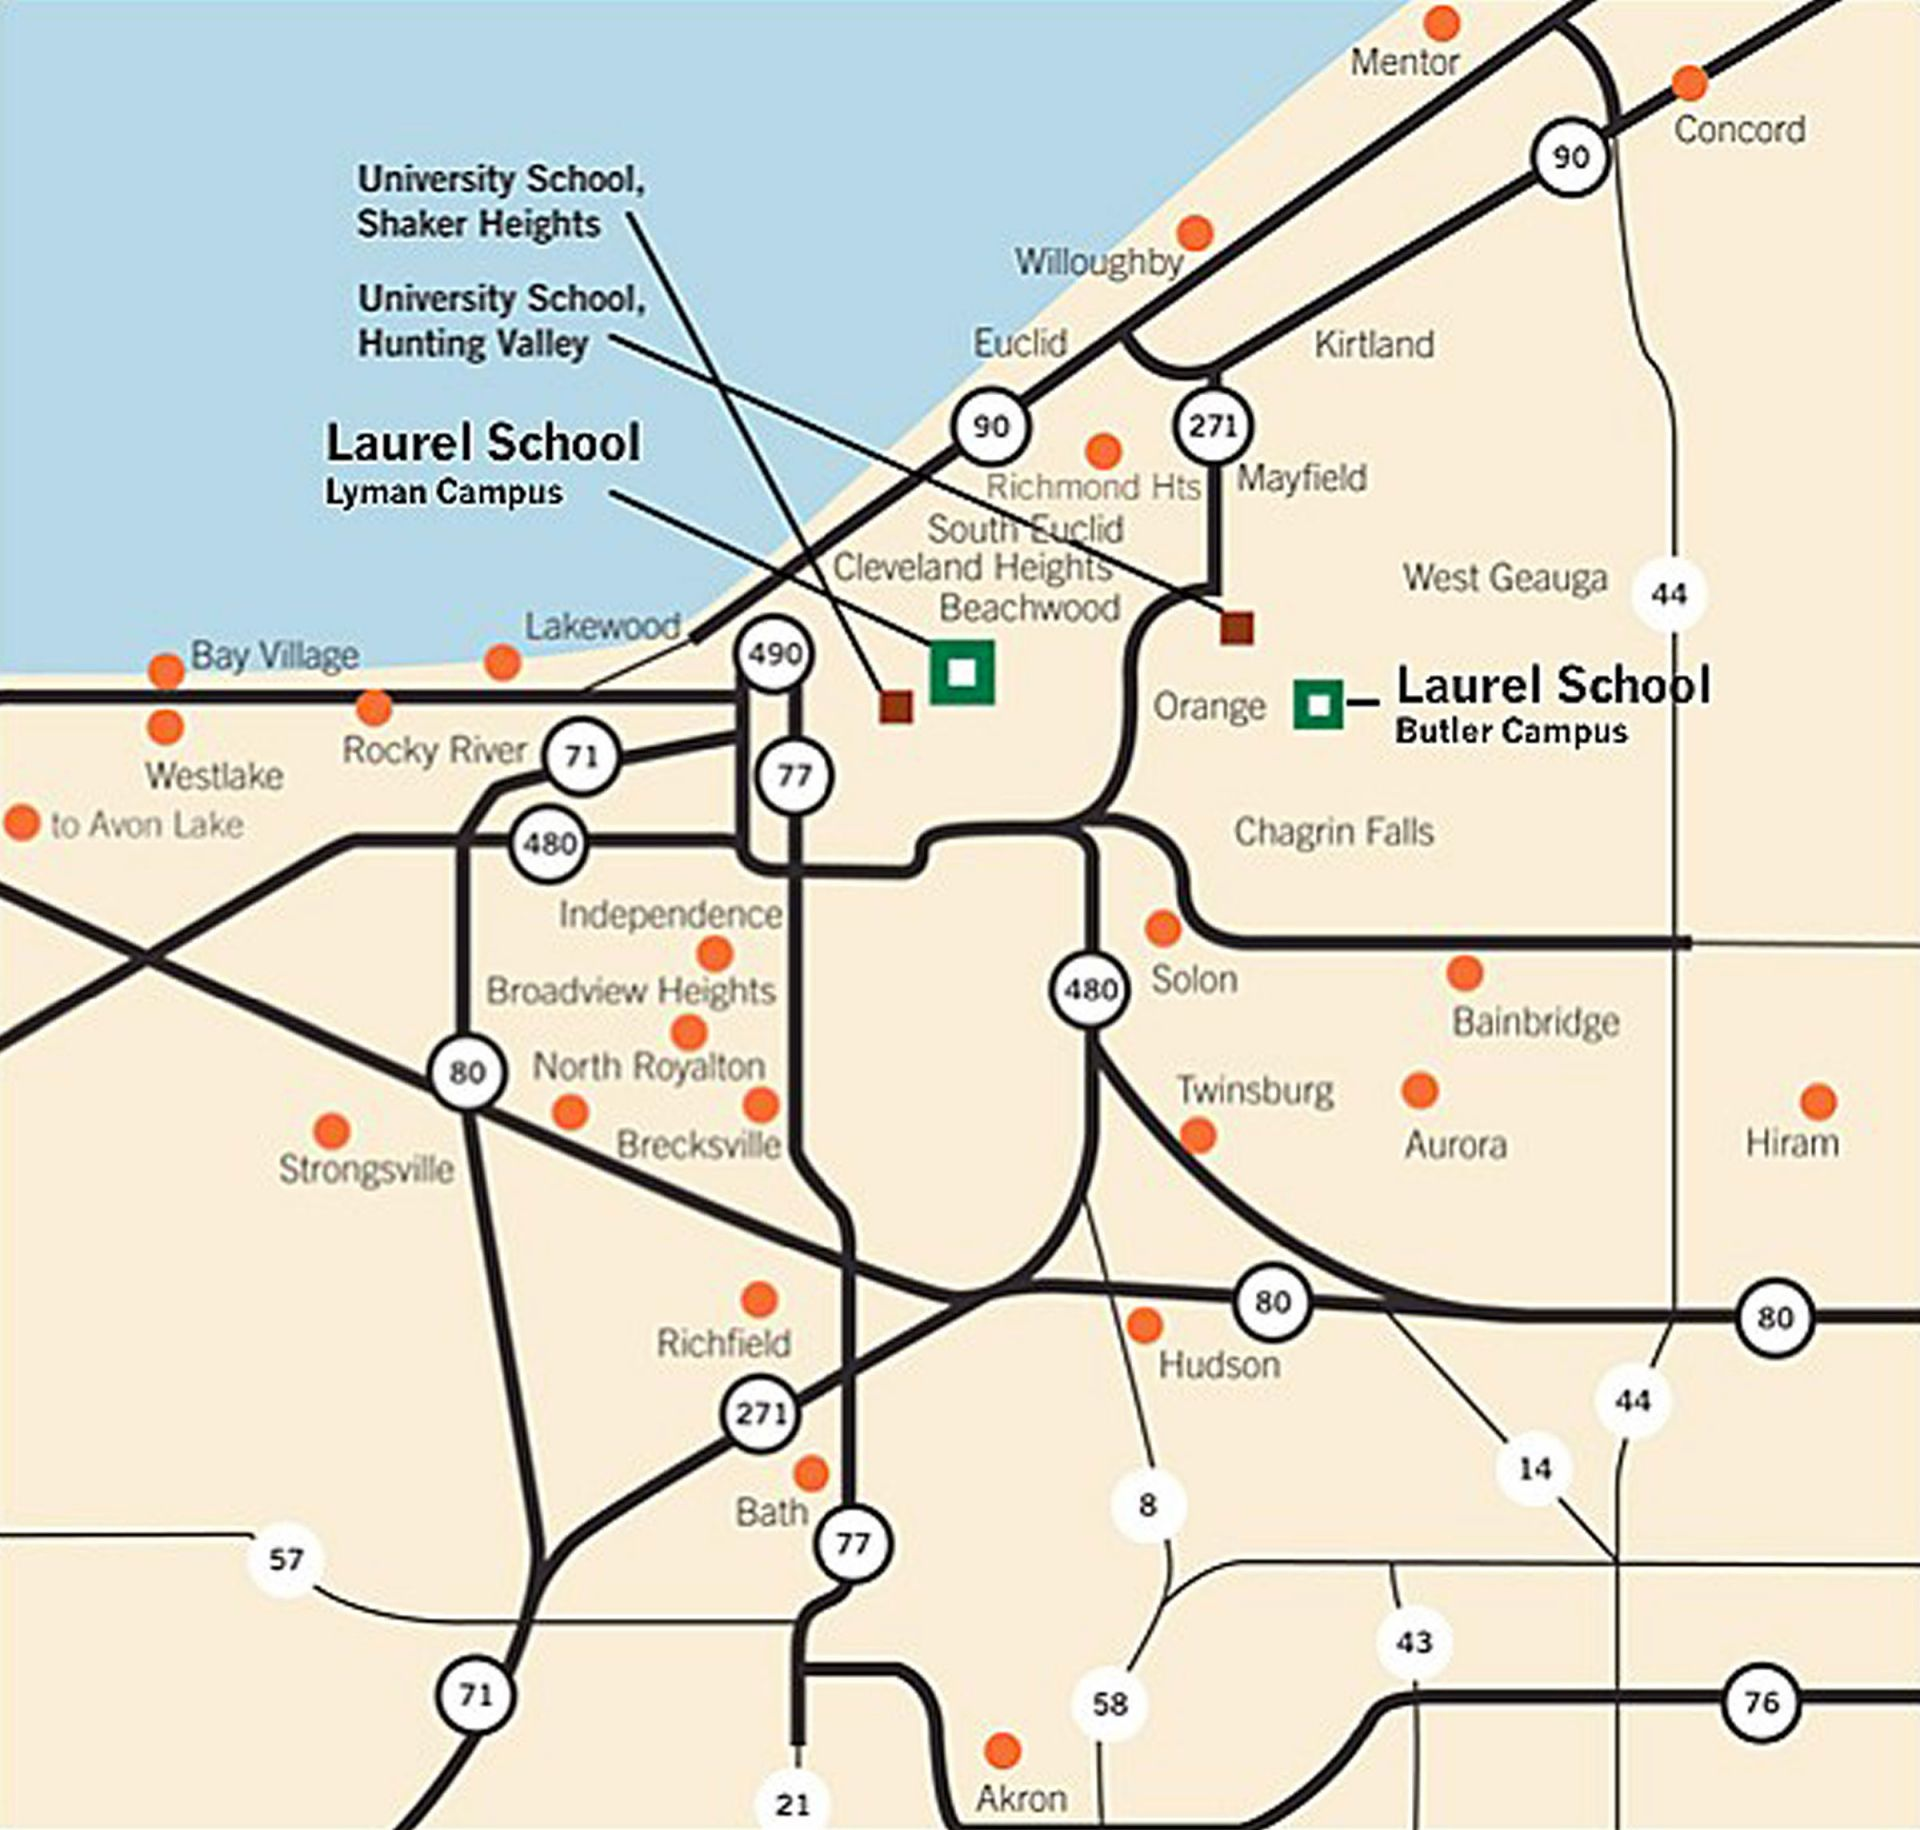 Bus service is available to Laurel School students from these communities (red dots) in Northeast Ohio.